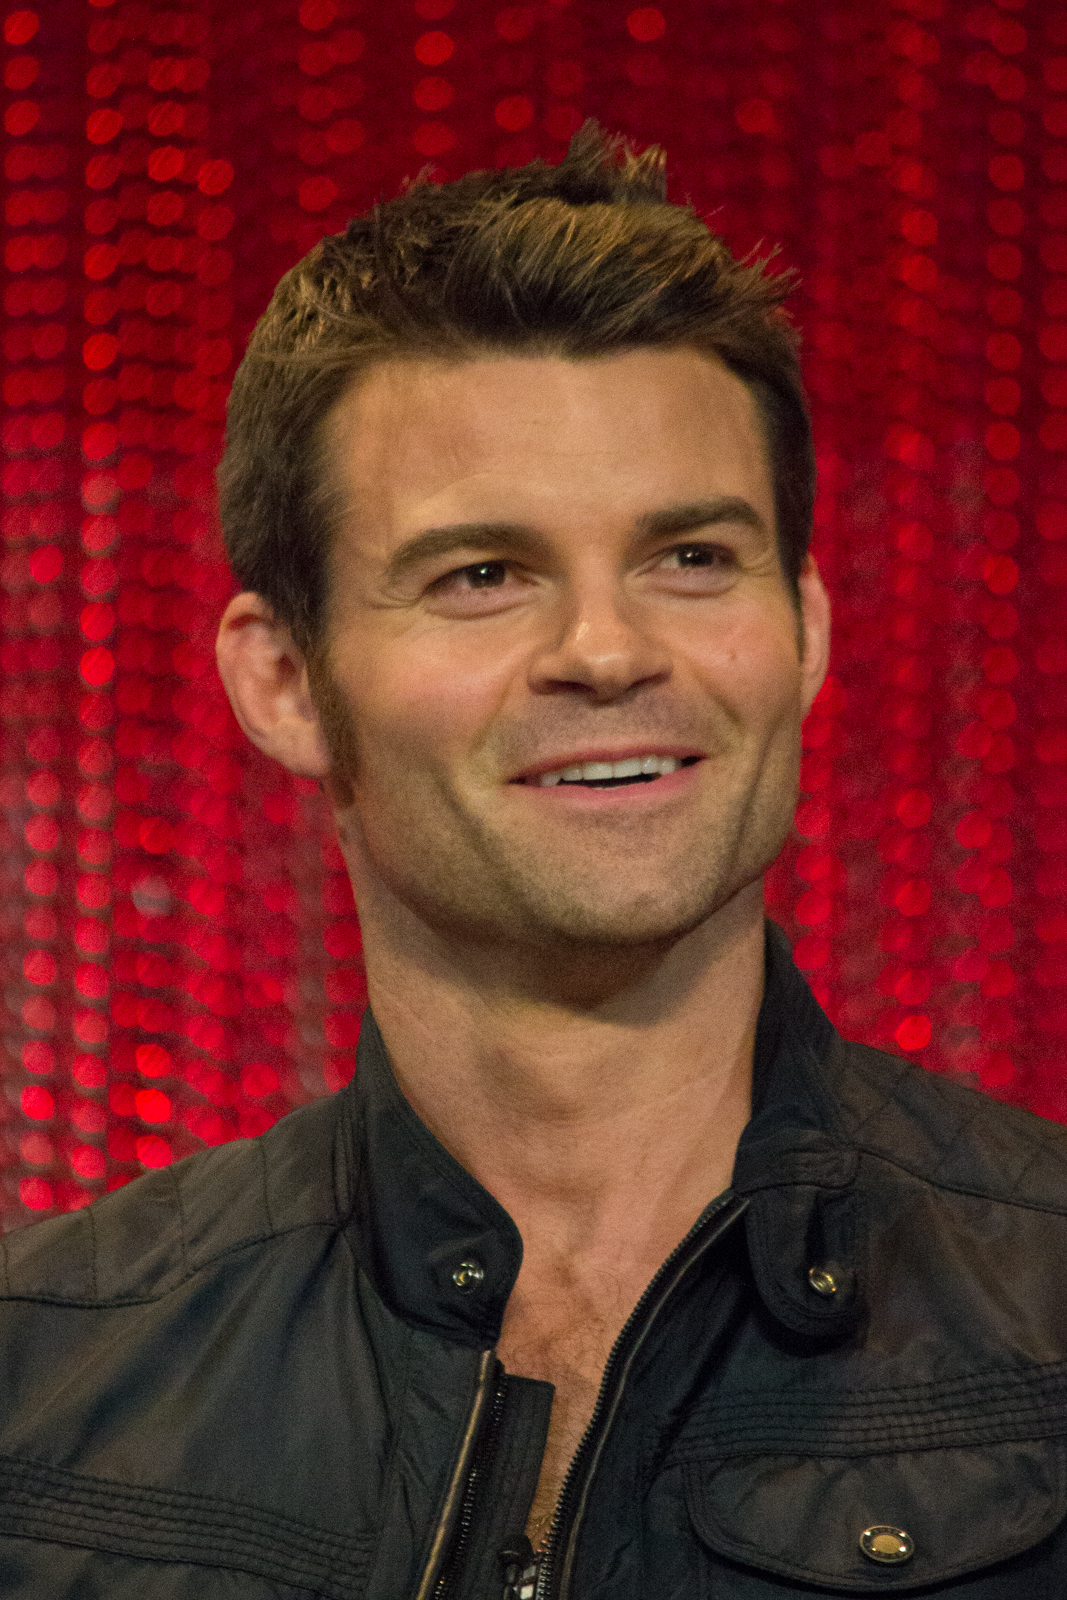 The 42-year old son of father (?) and mother(?) Daniel Gillies in 2018 photo. Daniel Gillies earned a  million dollar salary - leaving the net worth at 3 million in 2018